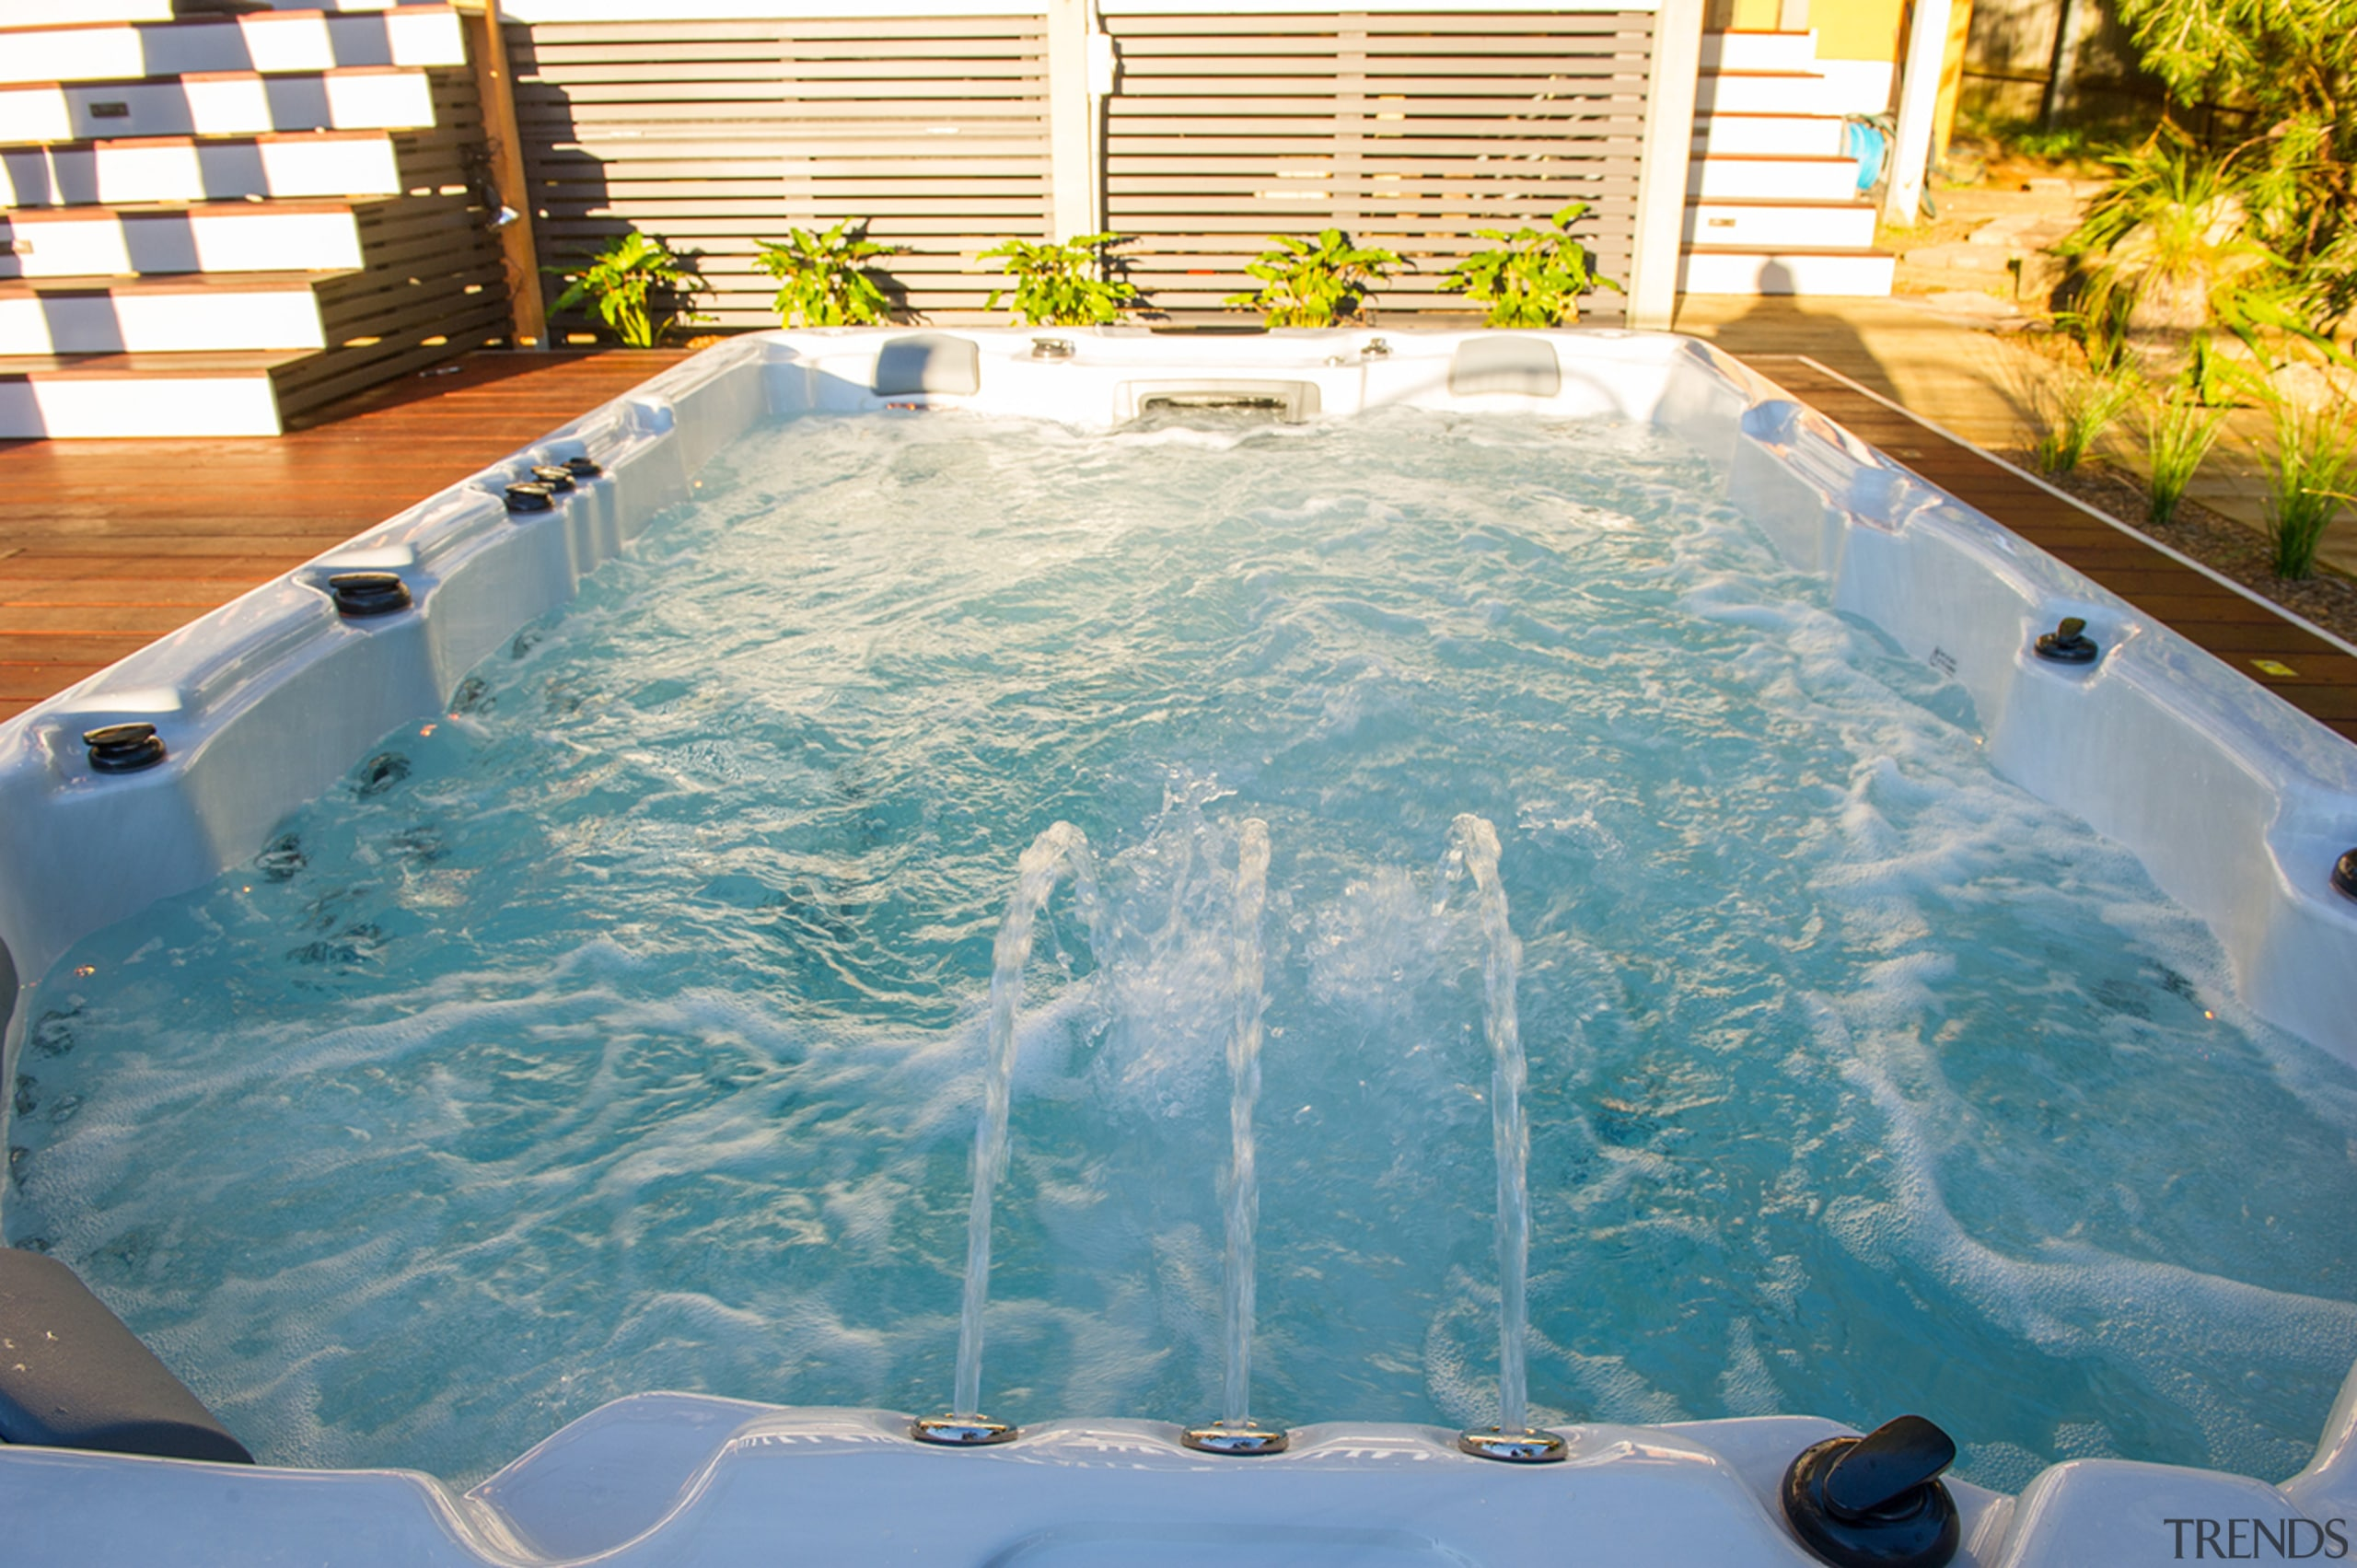 Oasis 017 - jacuzzi | leisure | leisure jacuzzi, leisure, leisure centre, resort town, swimming pool, water, teal